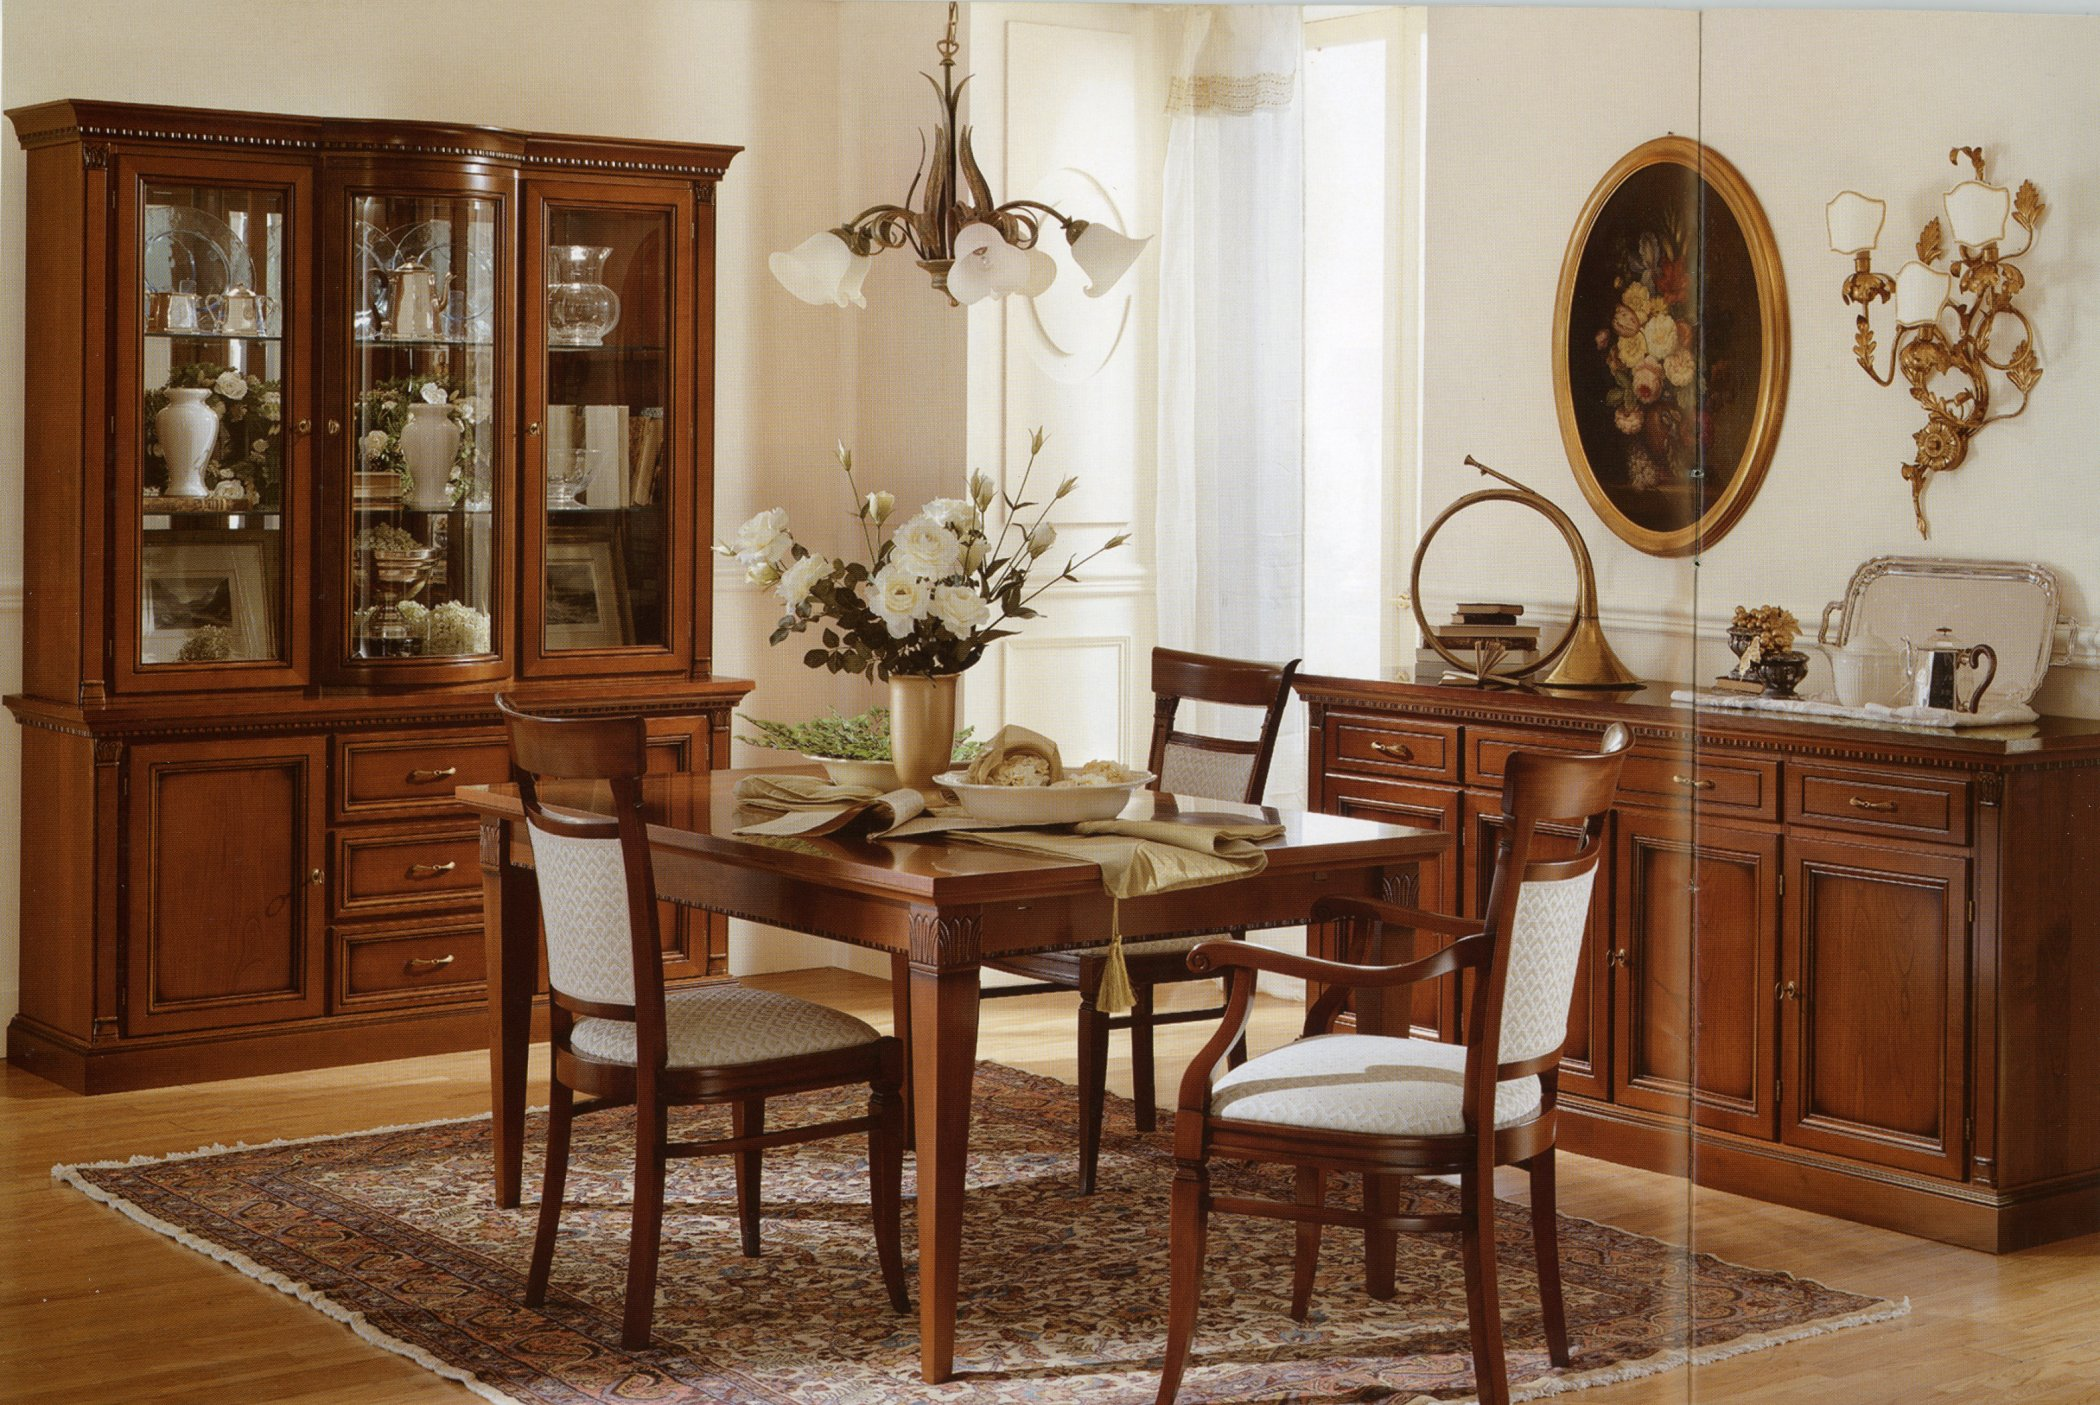 Dining room table decor - Dining Room Sets With Accessories On Table And Col Chandelier